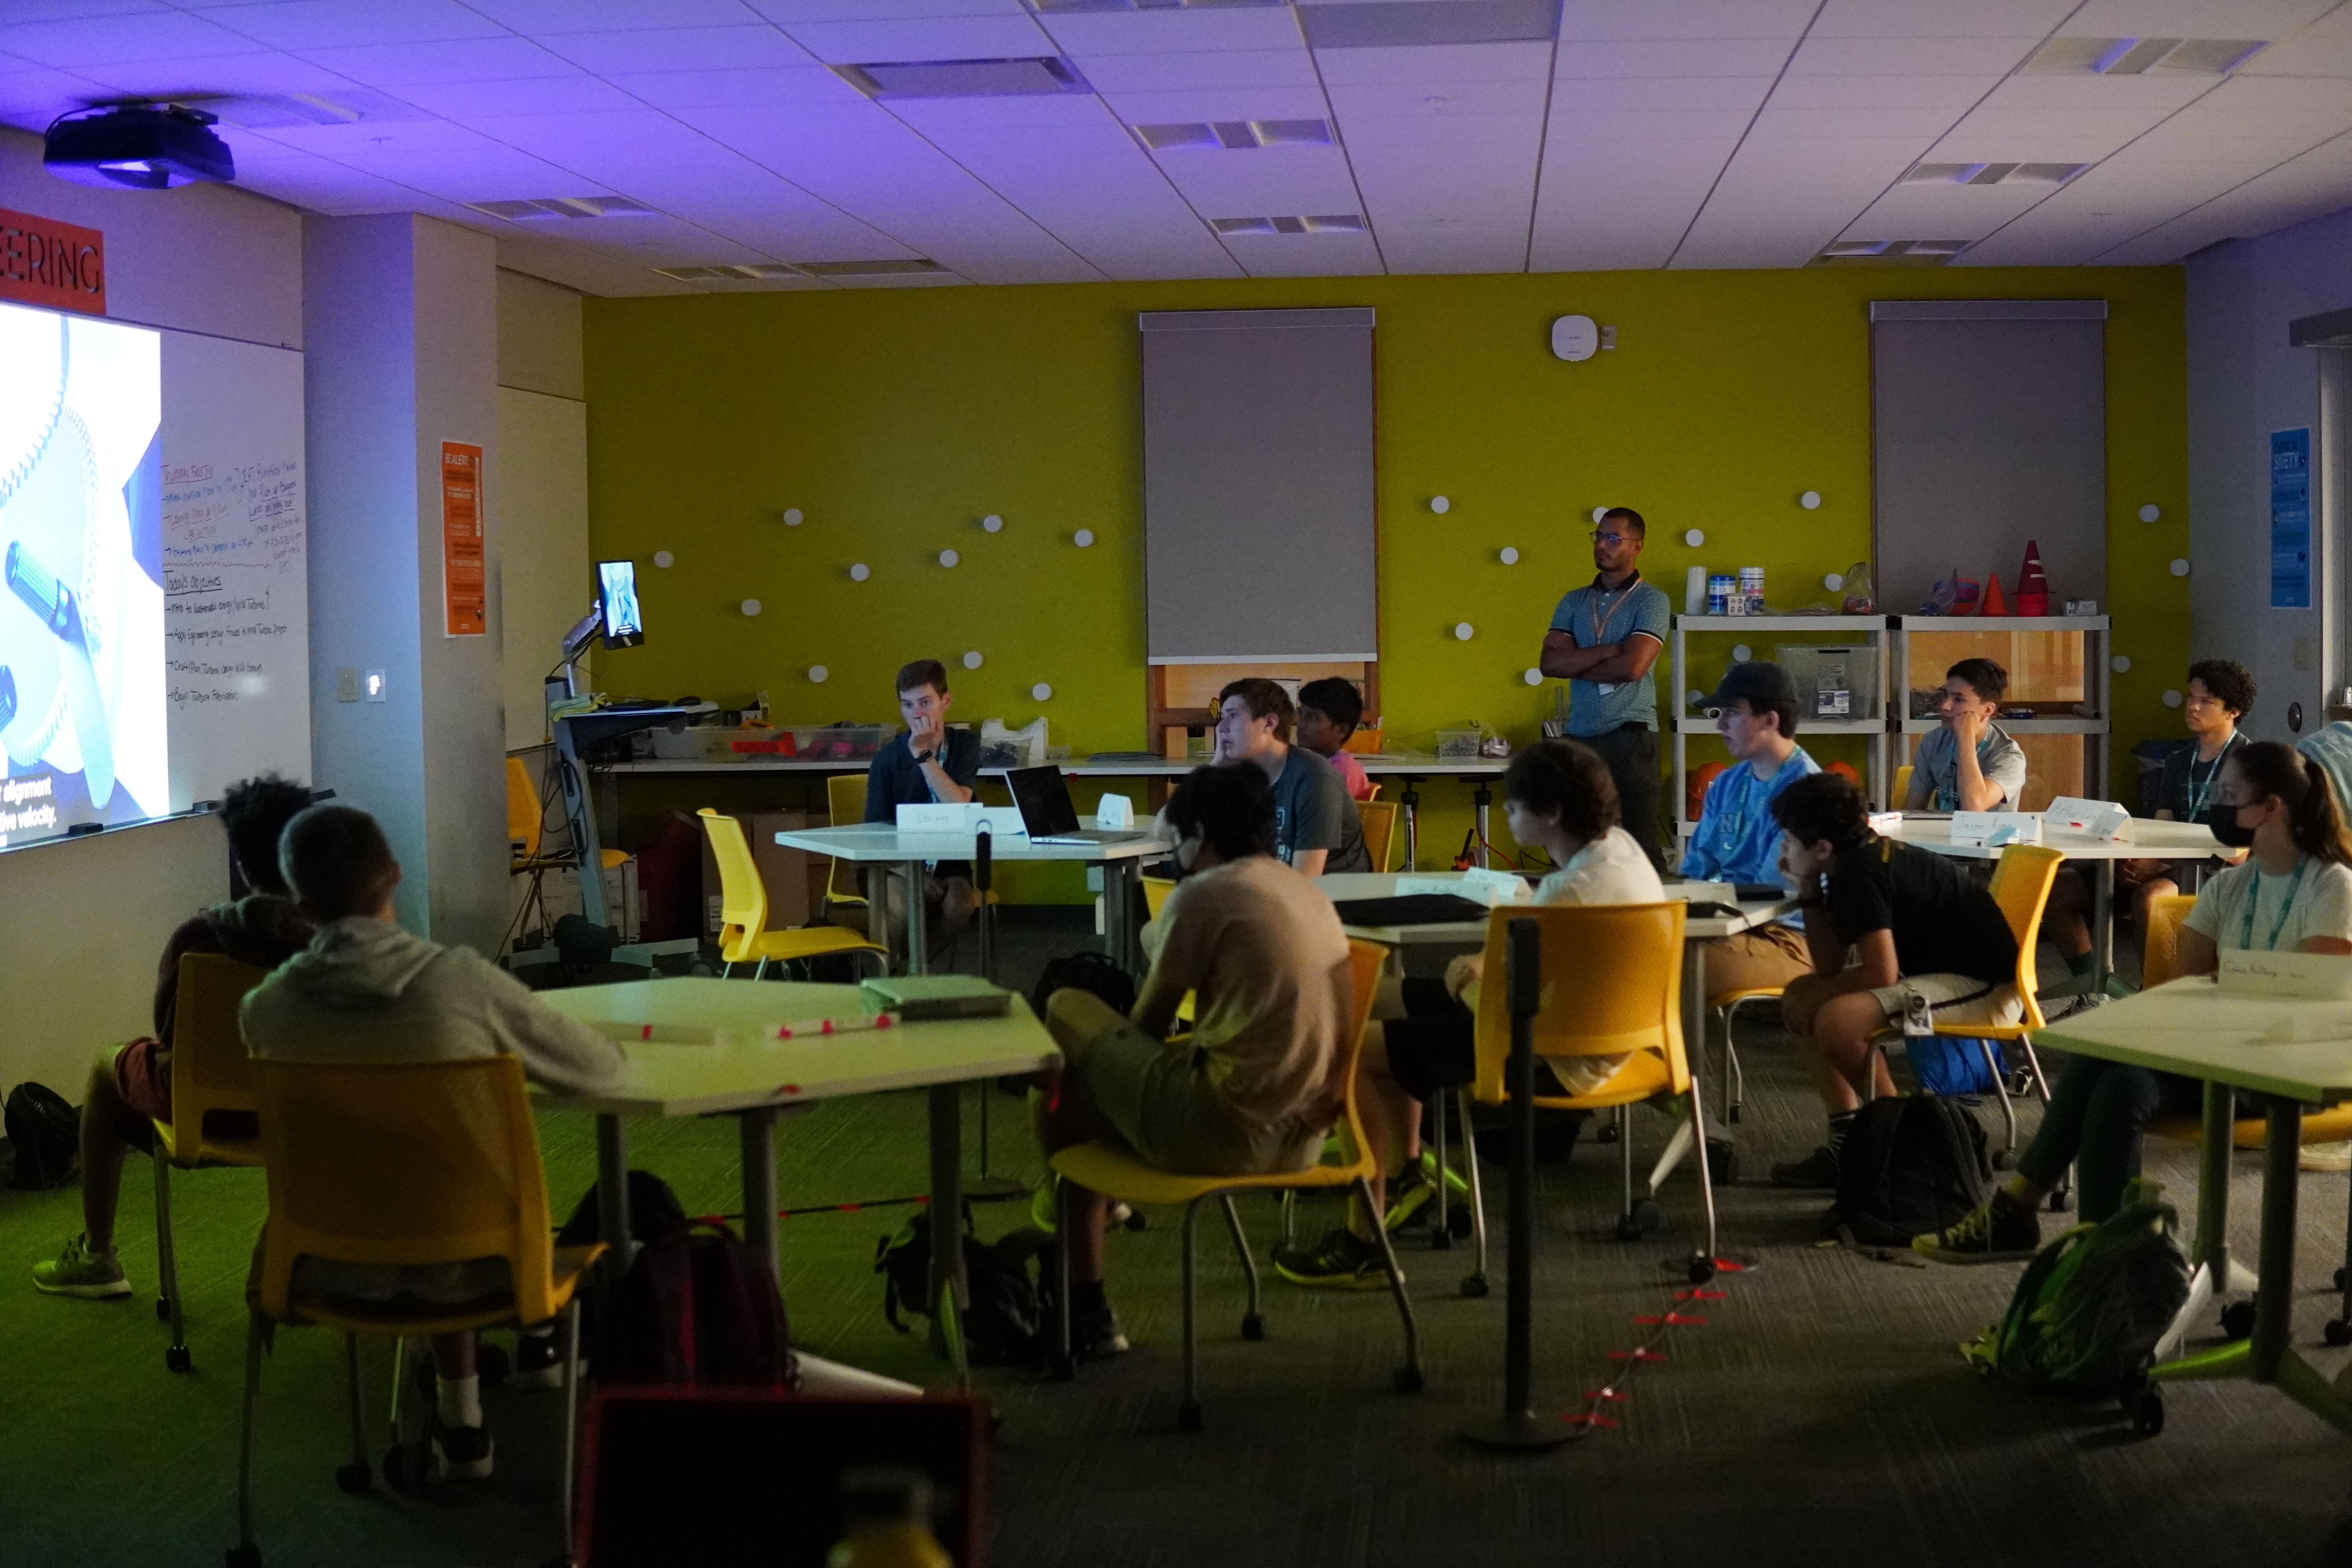 Students sit in a room watching a video projected in front of them.